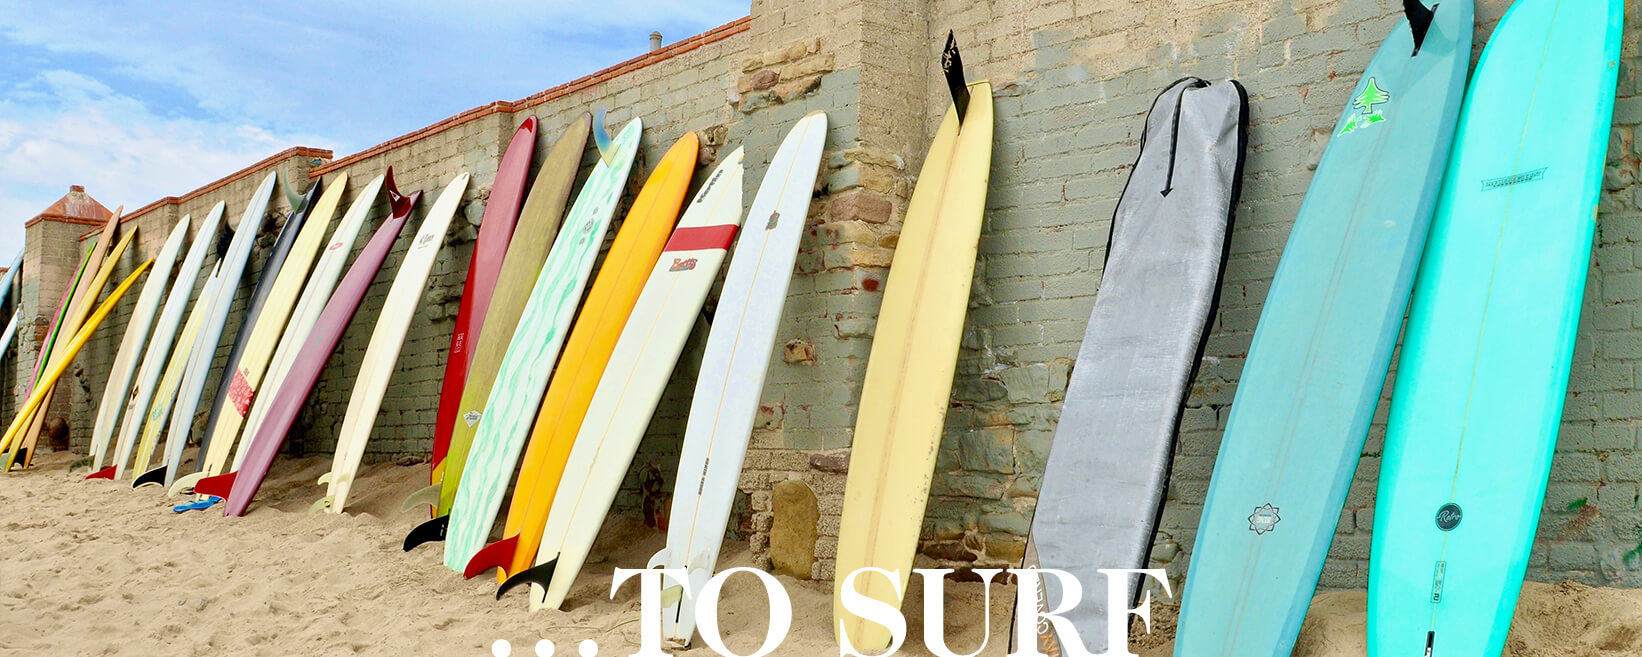 ... TO SURF section hero